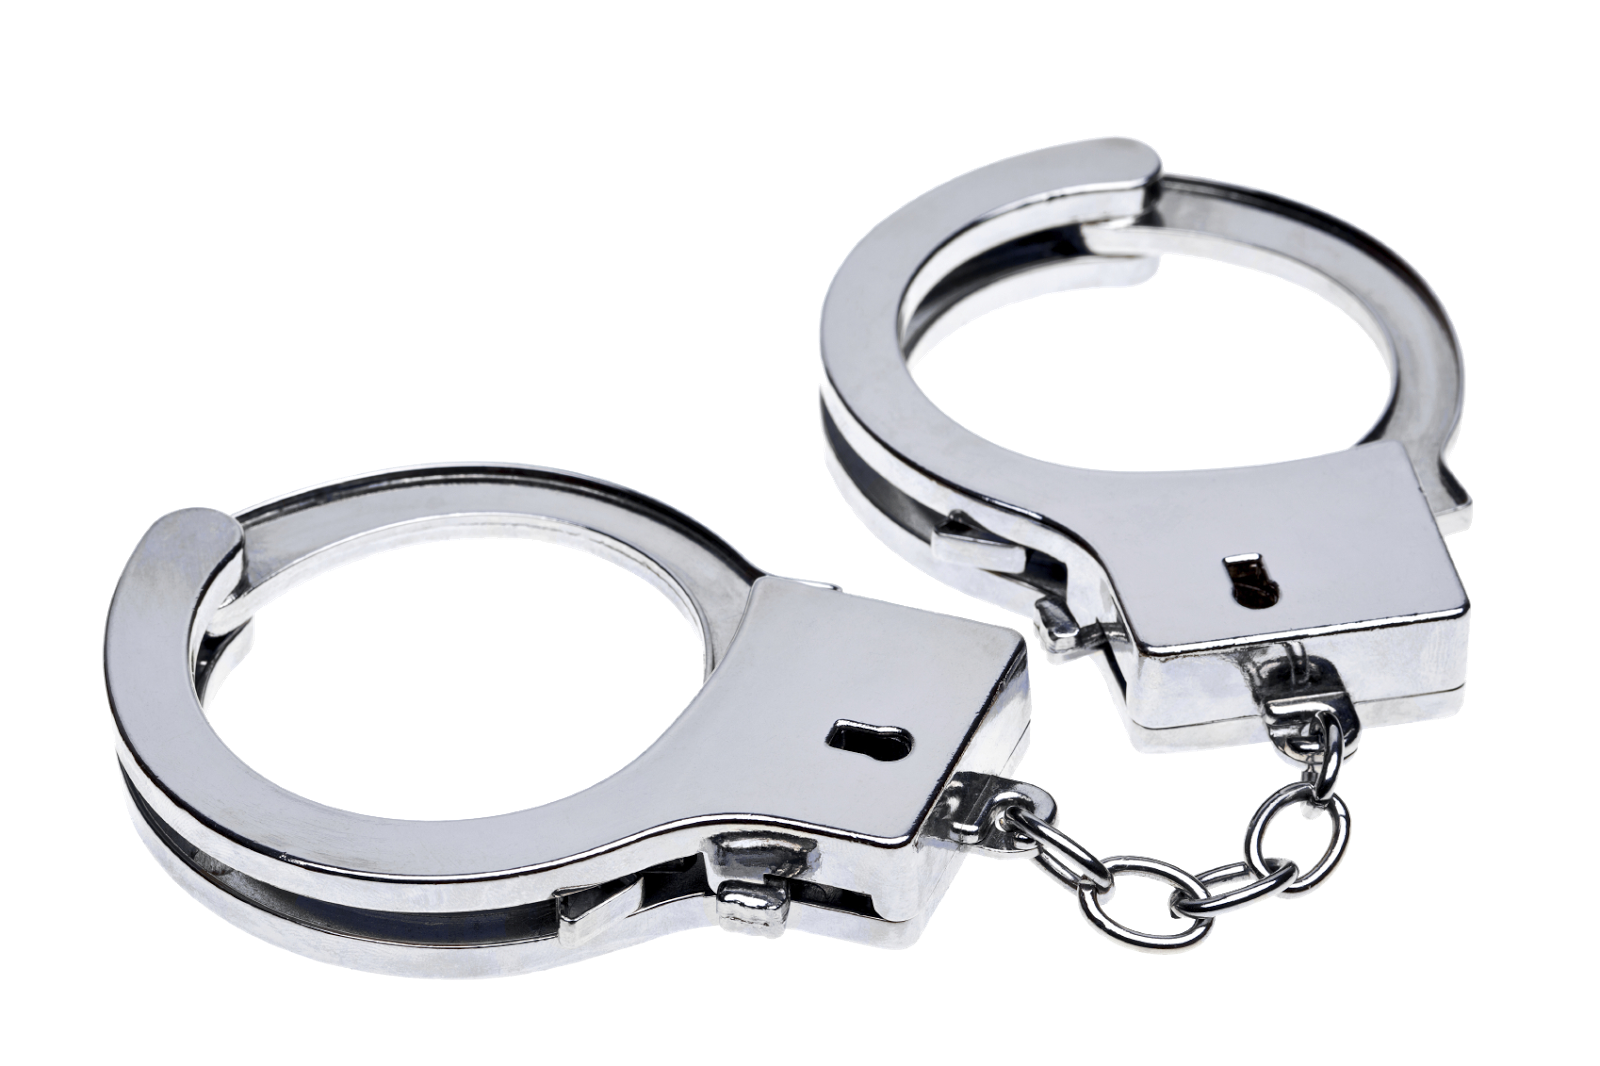 Handcuff clipart police officer. Handcuffs transparent png pictures